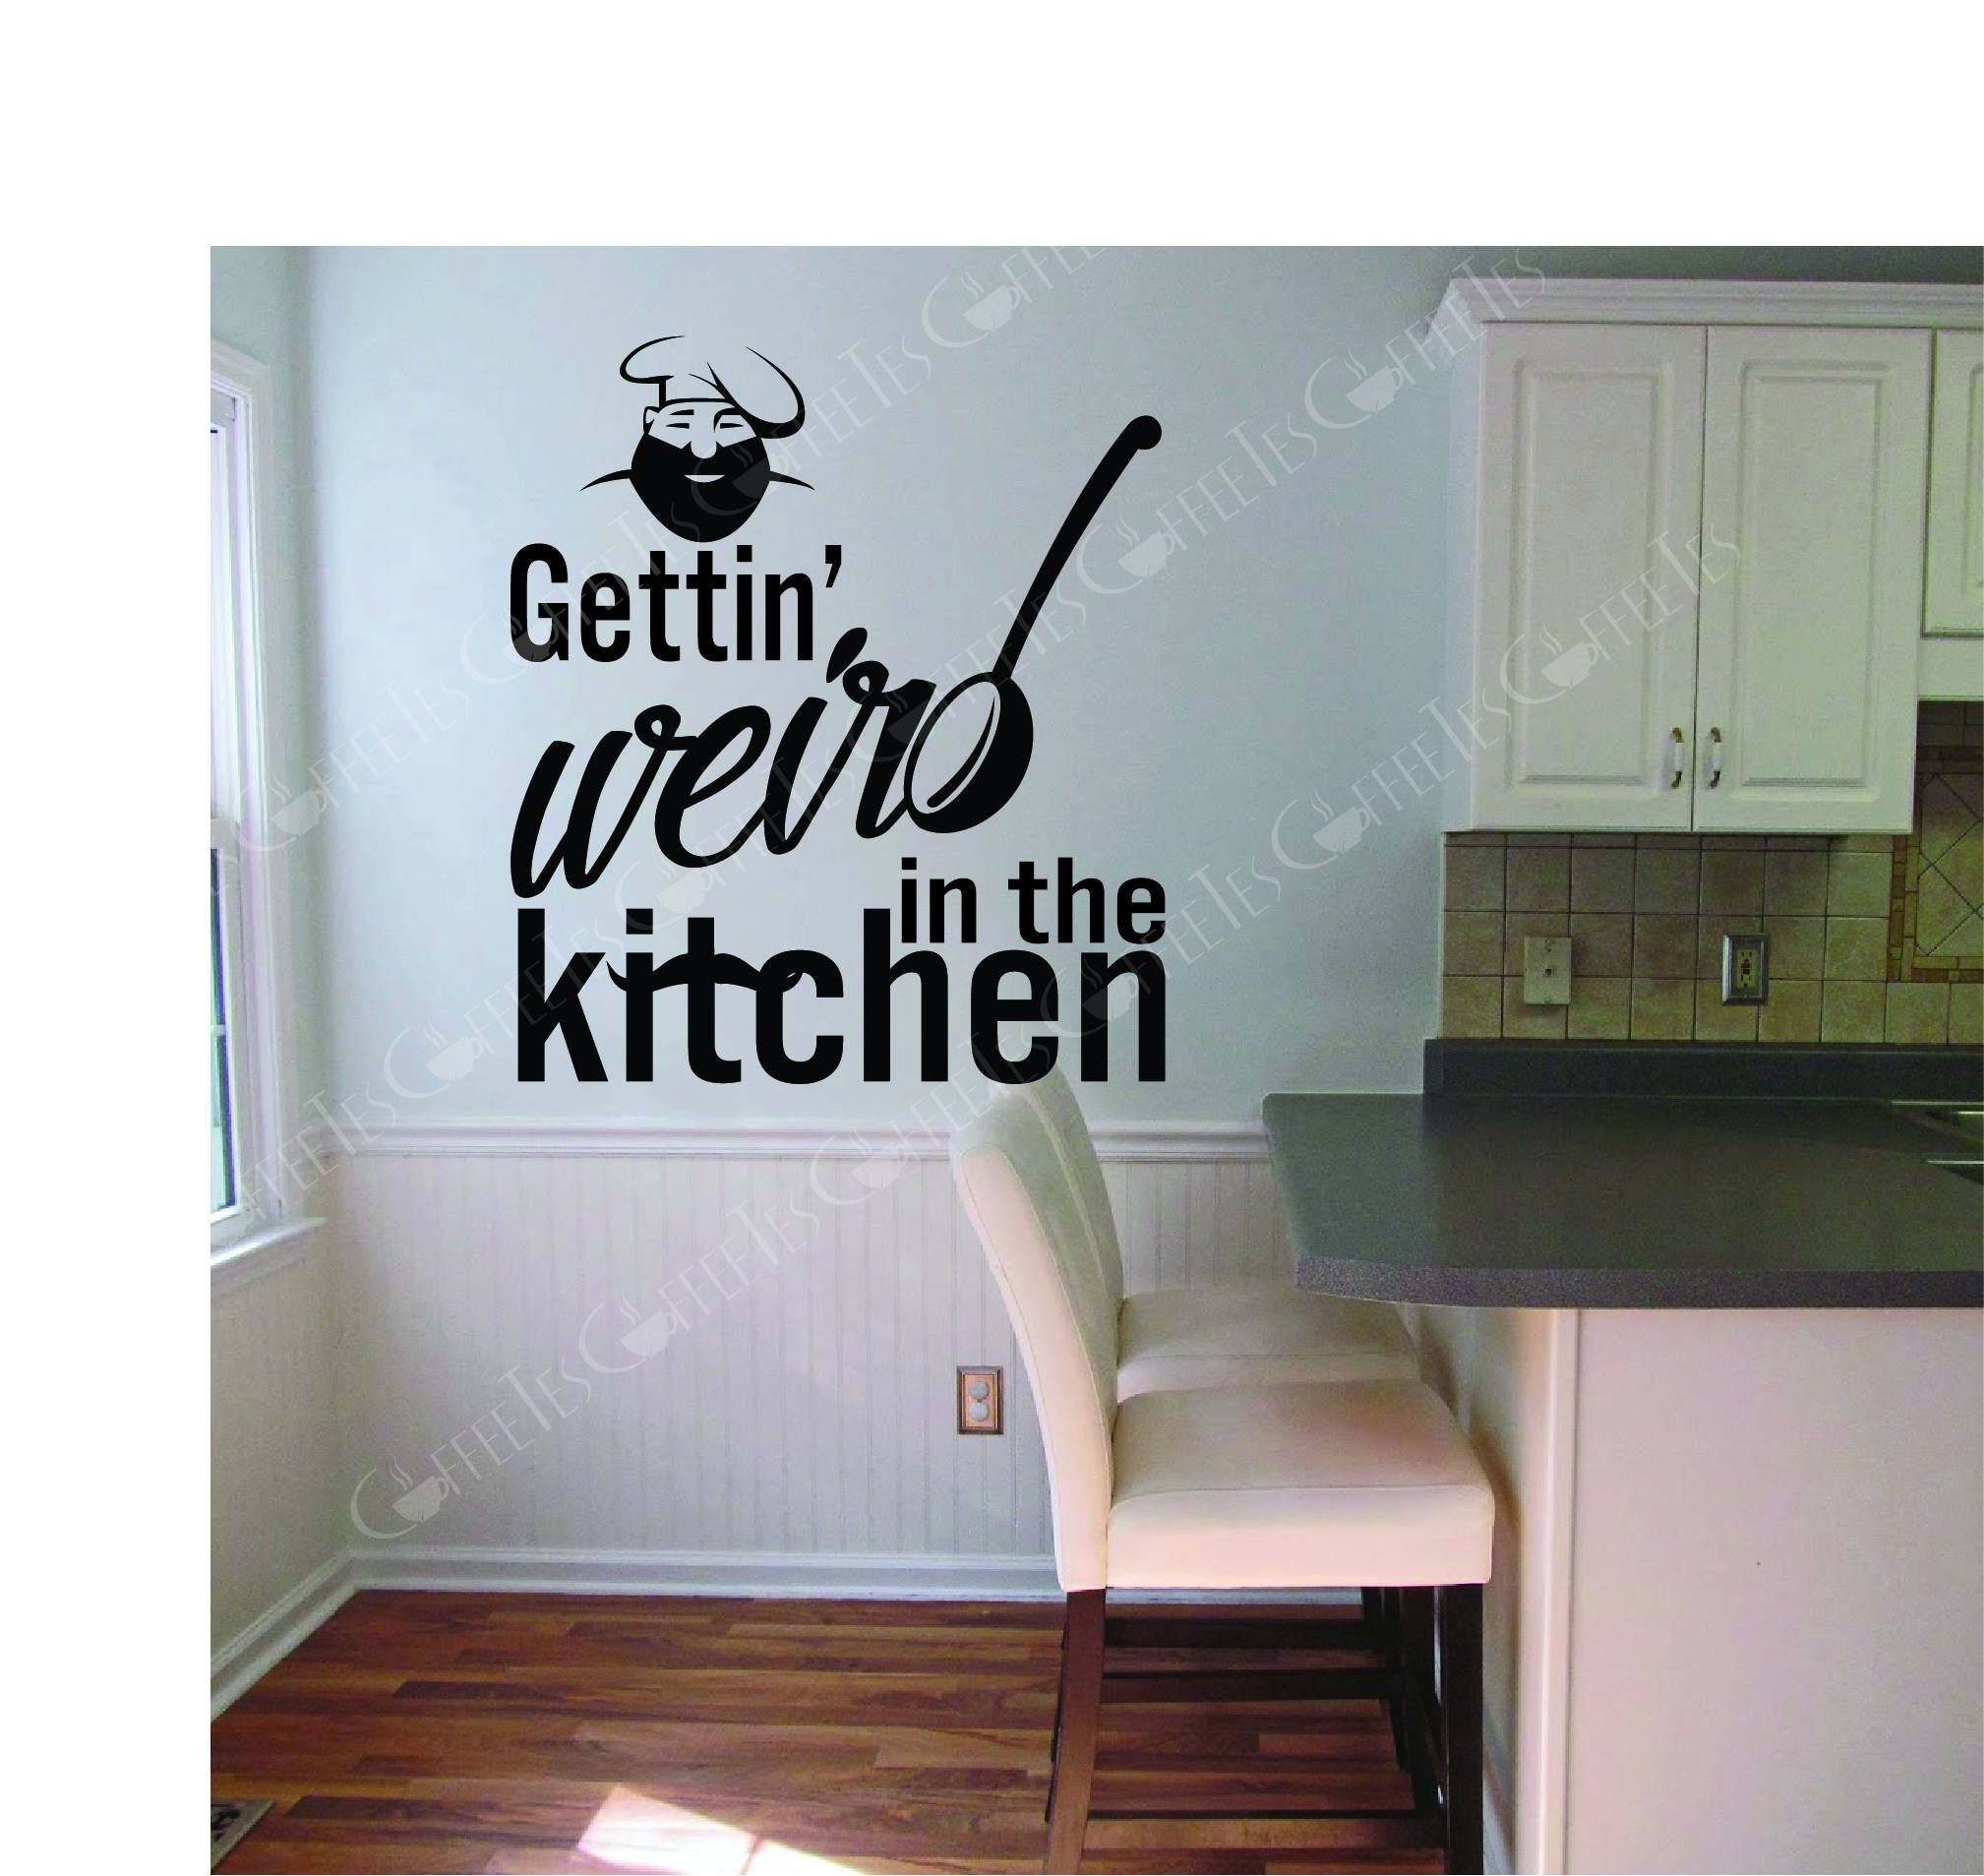 Gettin weird in the kitchen wall decal vinyl heat transfer all vector svg dxf pdf vinyl decal by coffeetes on etsy